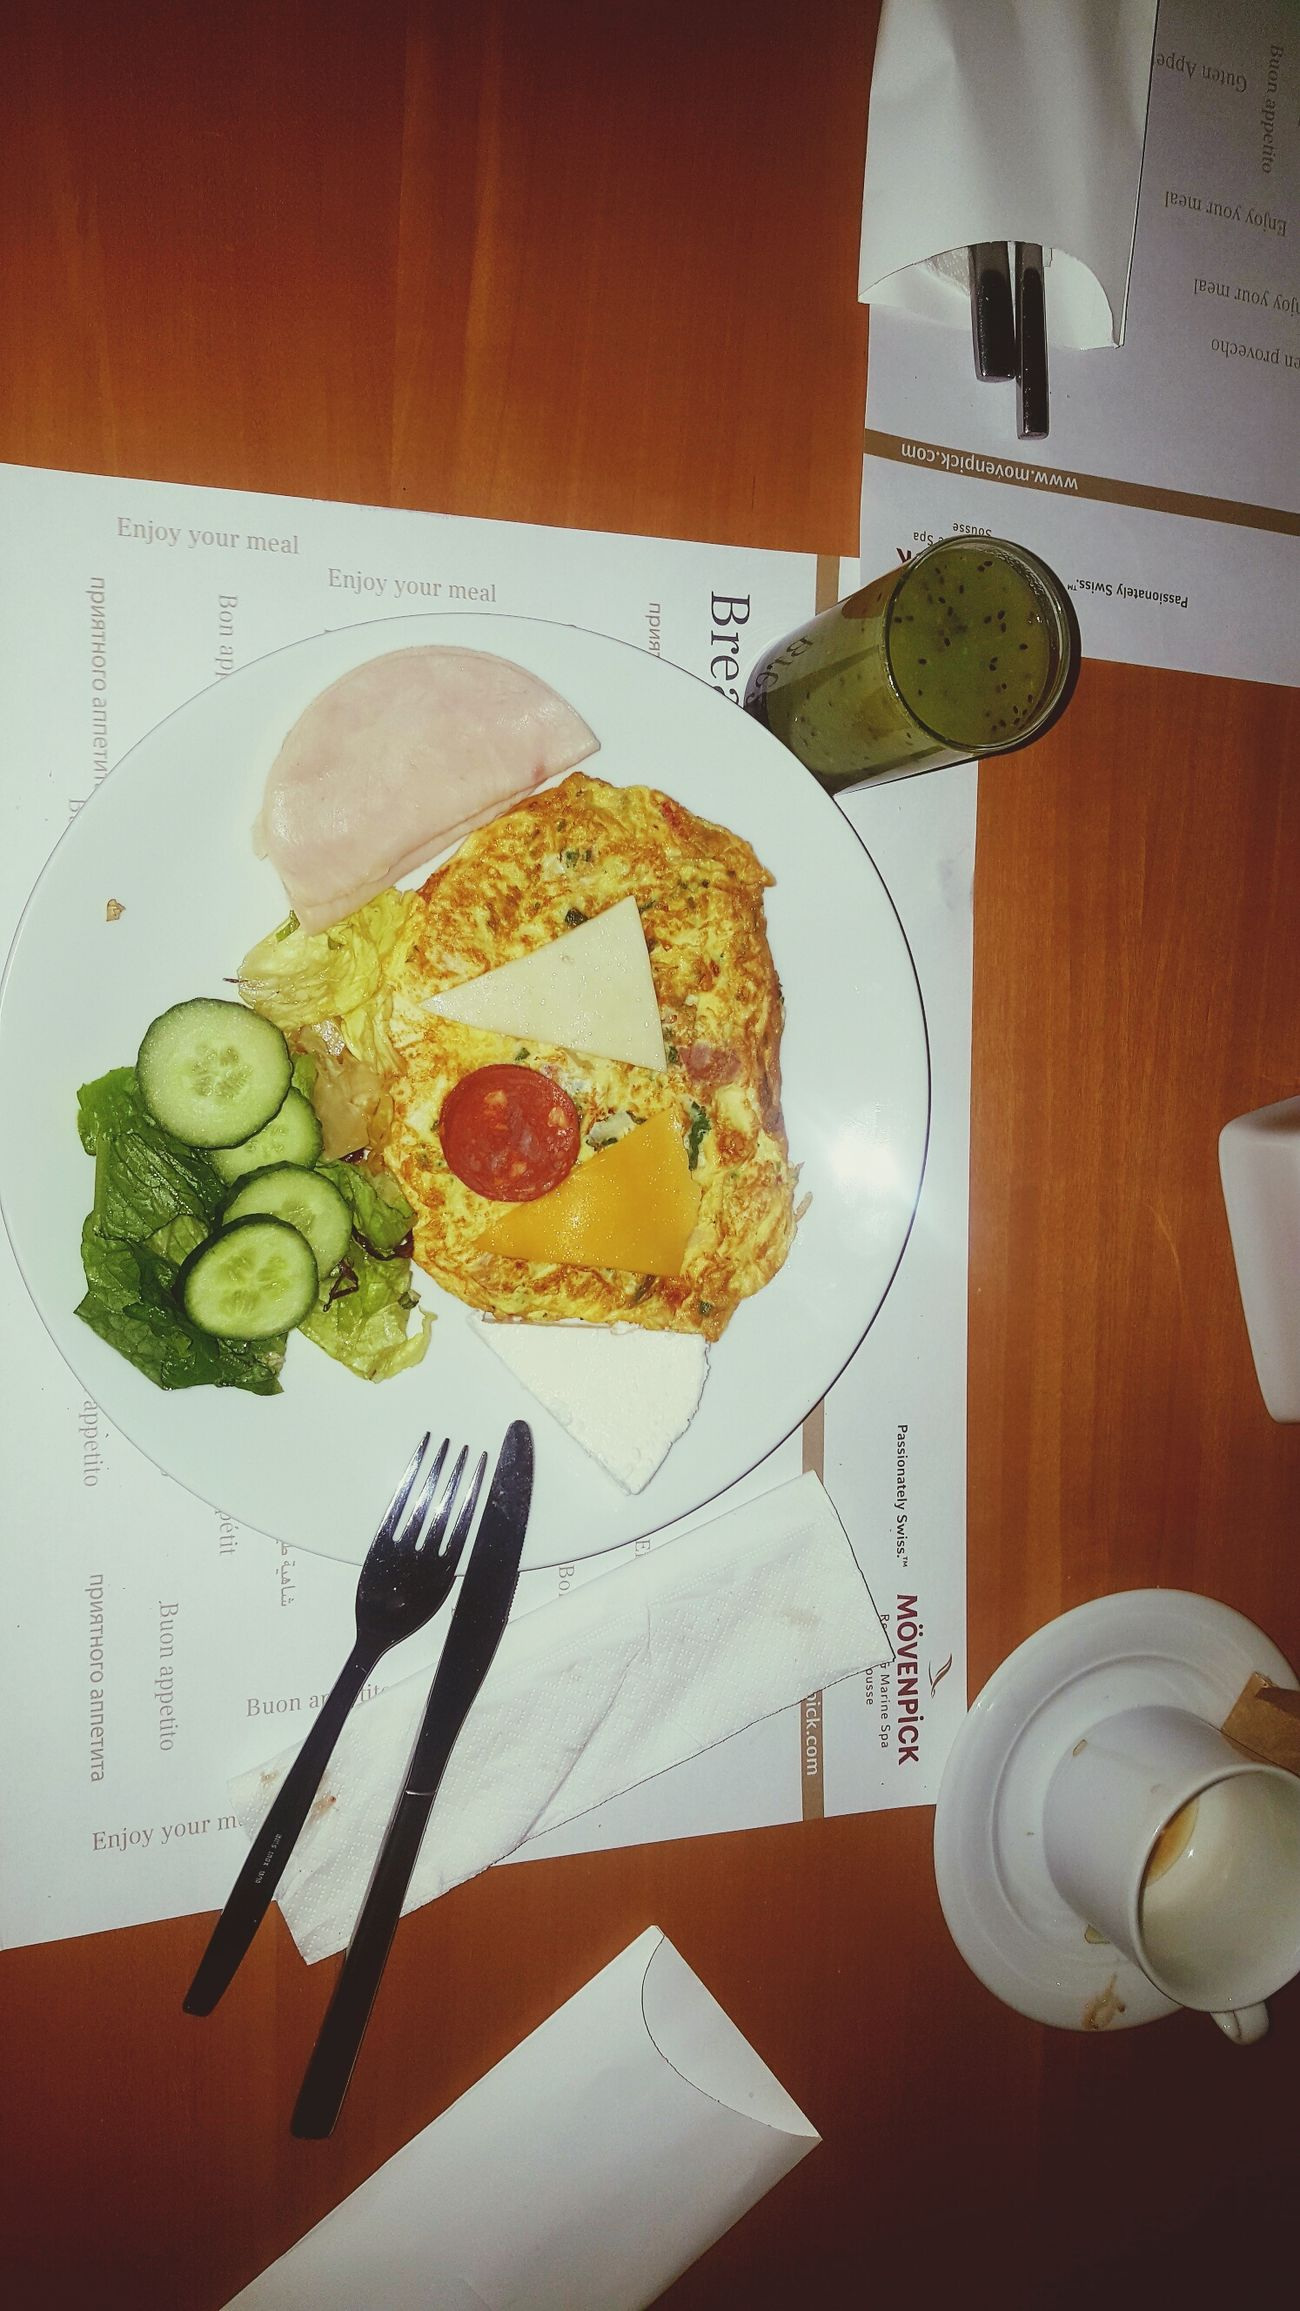 Food No People Indoors  Foodphotography EyeEm Gallery Eye Em Best Shots Breakfast Omlette Omlet Mövenpick Mövenpick Hotel Movenpick_hotel